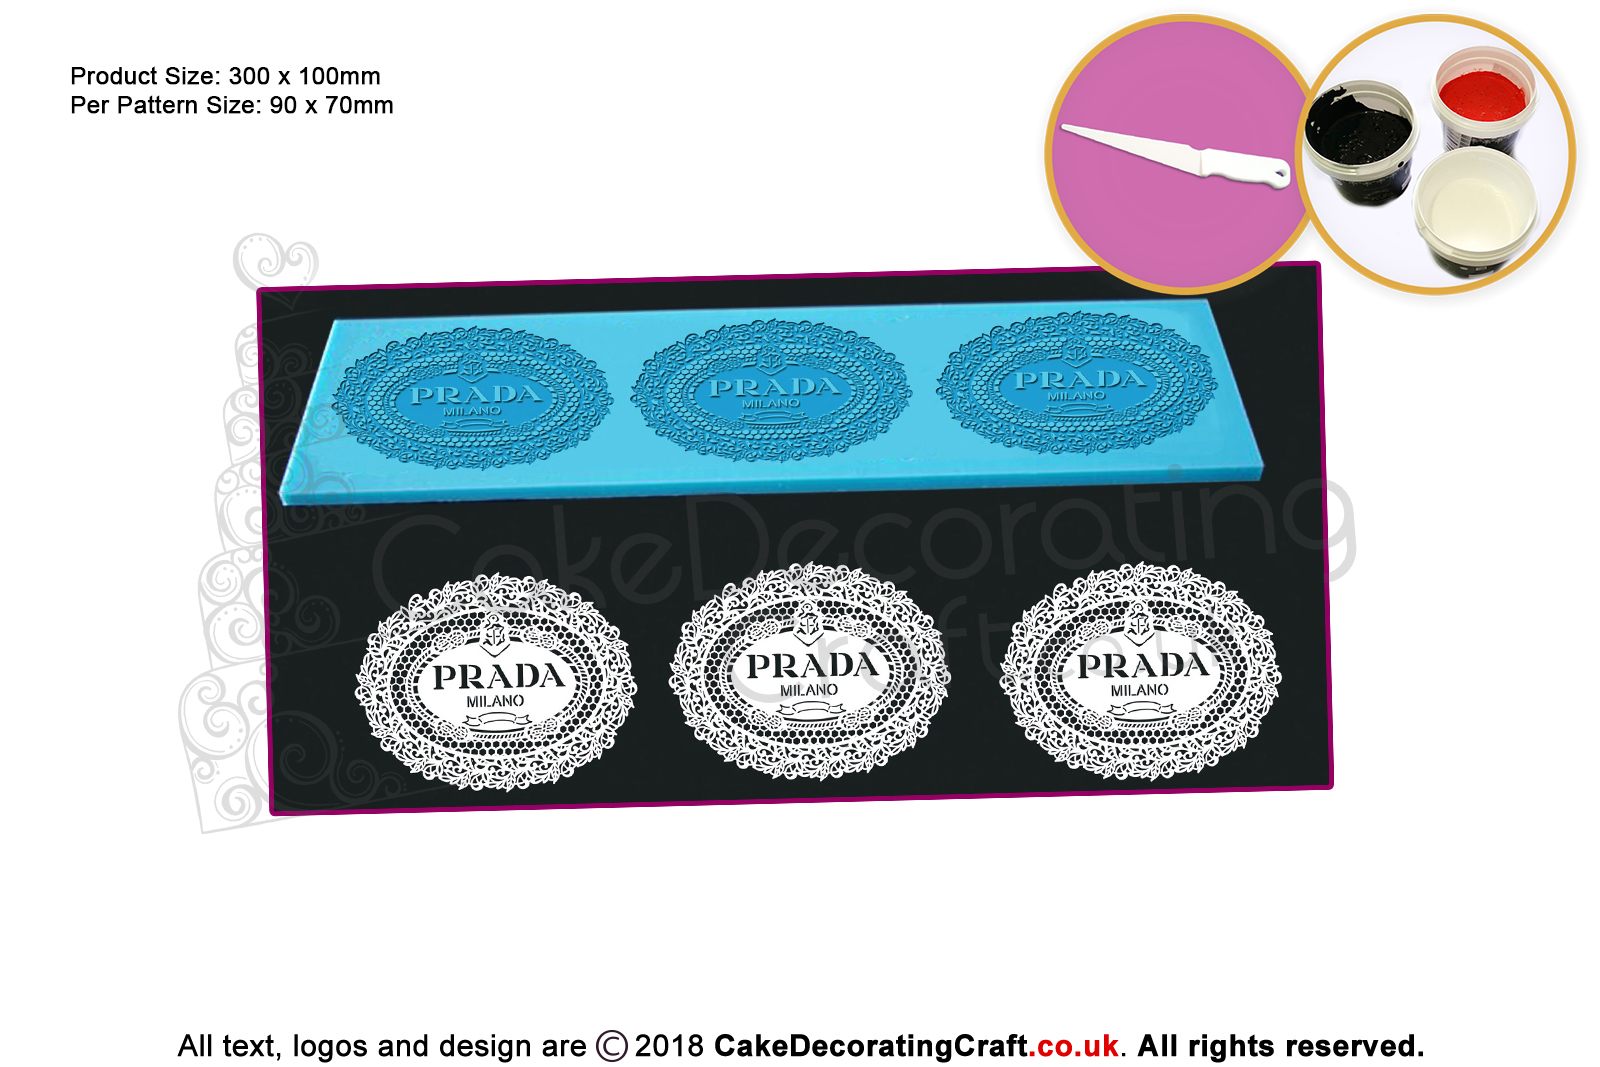 Prada Cake Lace Mats Cake Decorating Starter Kit Cake